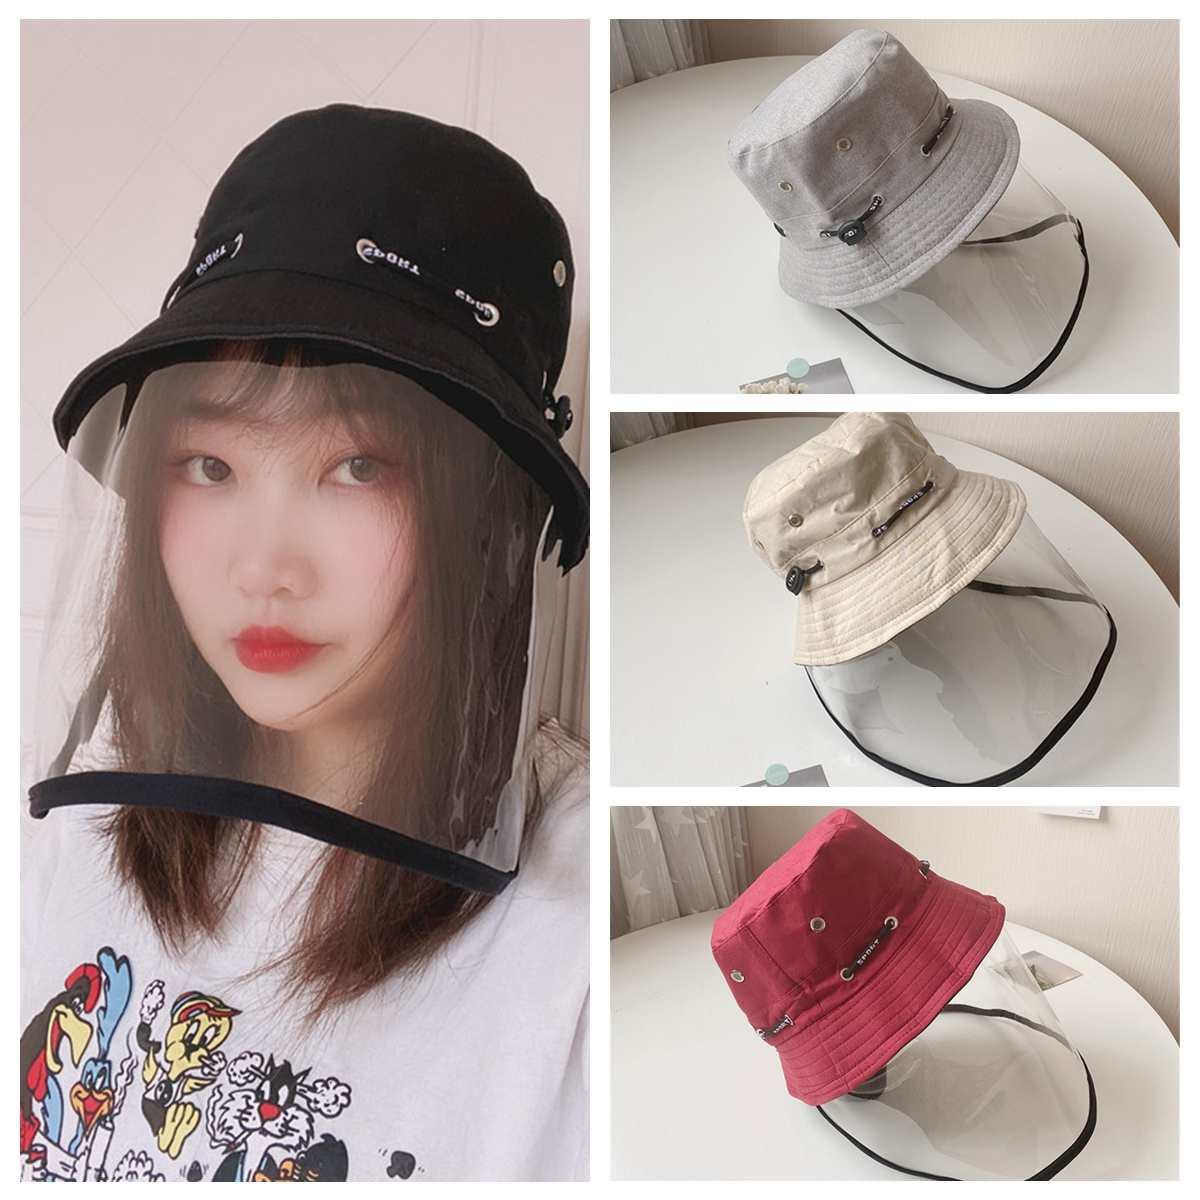 Transparent Anti Virus Protective Mask Anti-spitting Anti-droplet Splash-Proof Hat Fisherman Cap